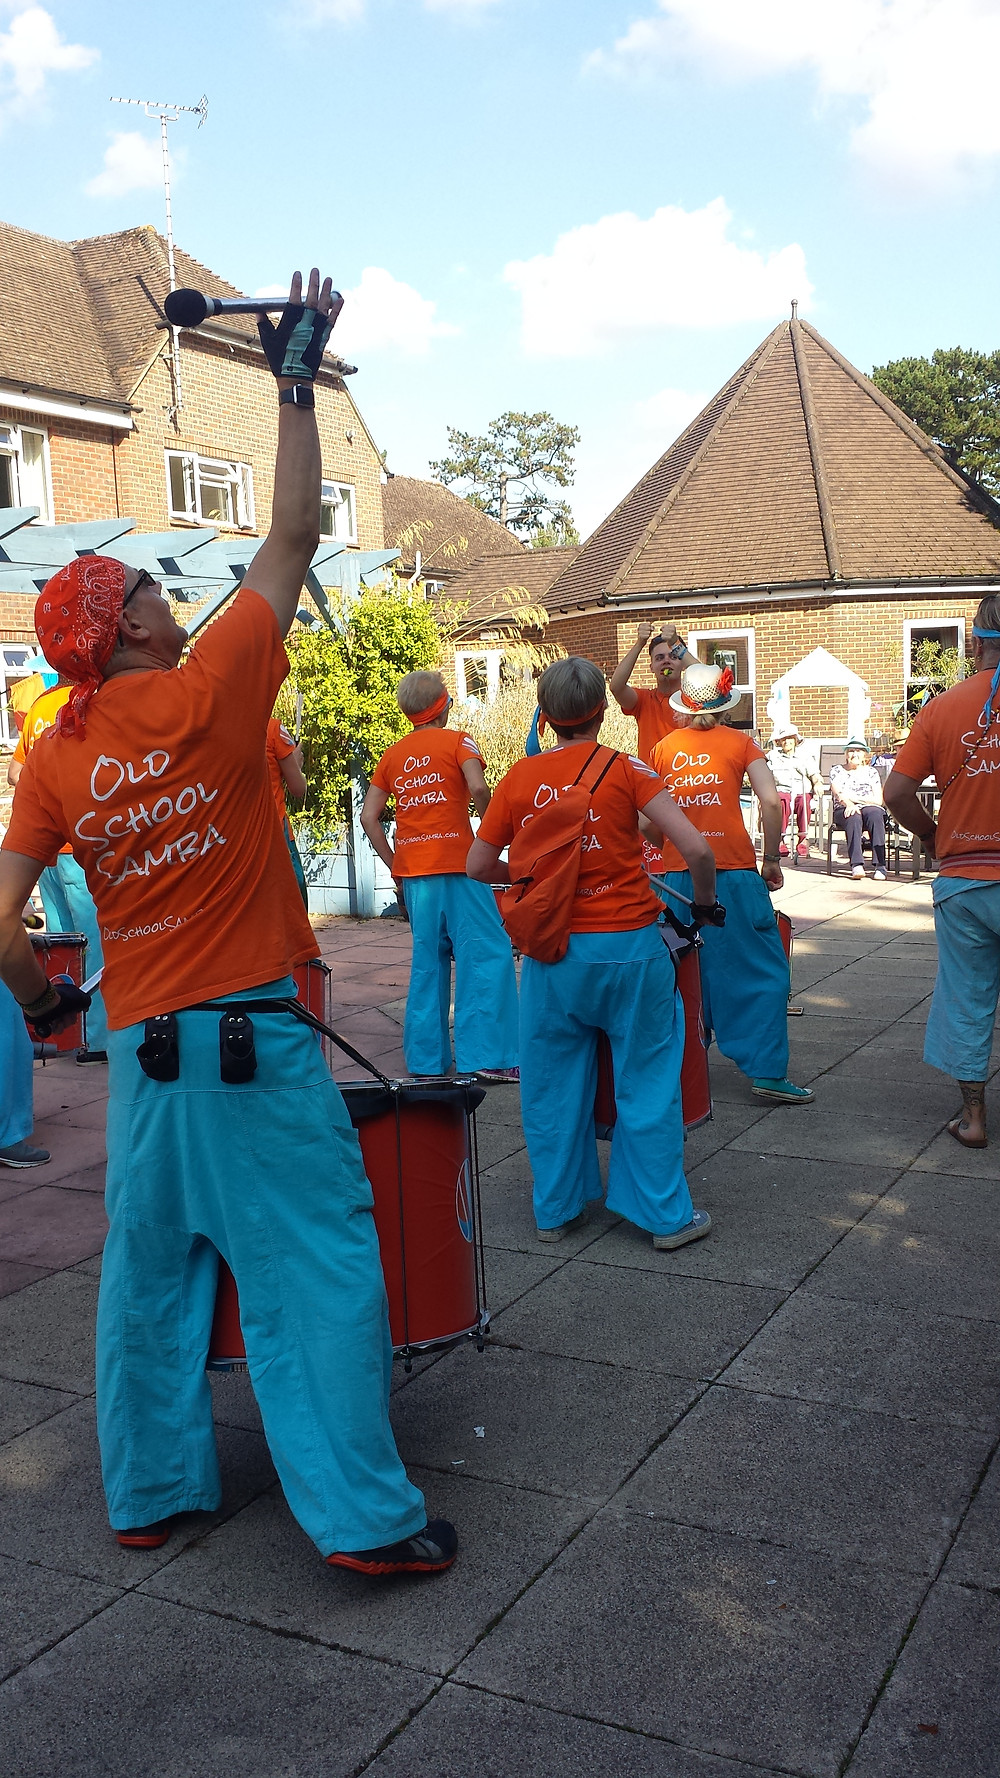 Old School Samba at the Hillbeck Residential Care Home